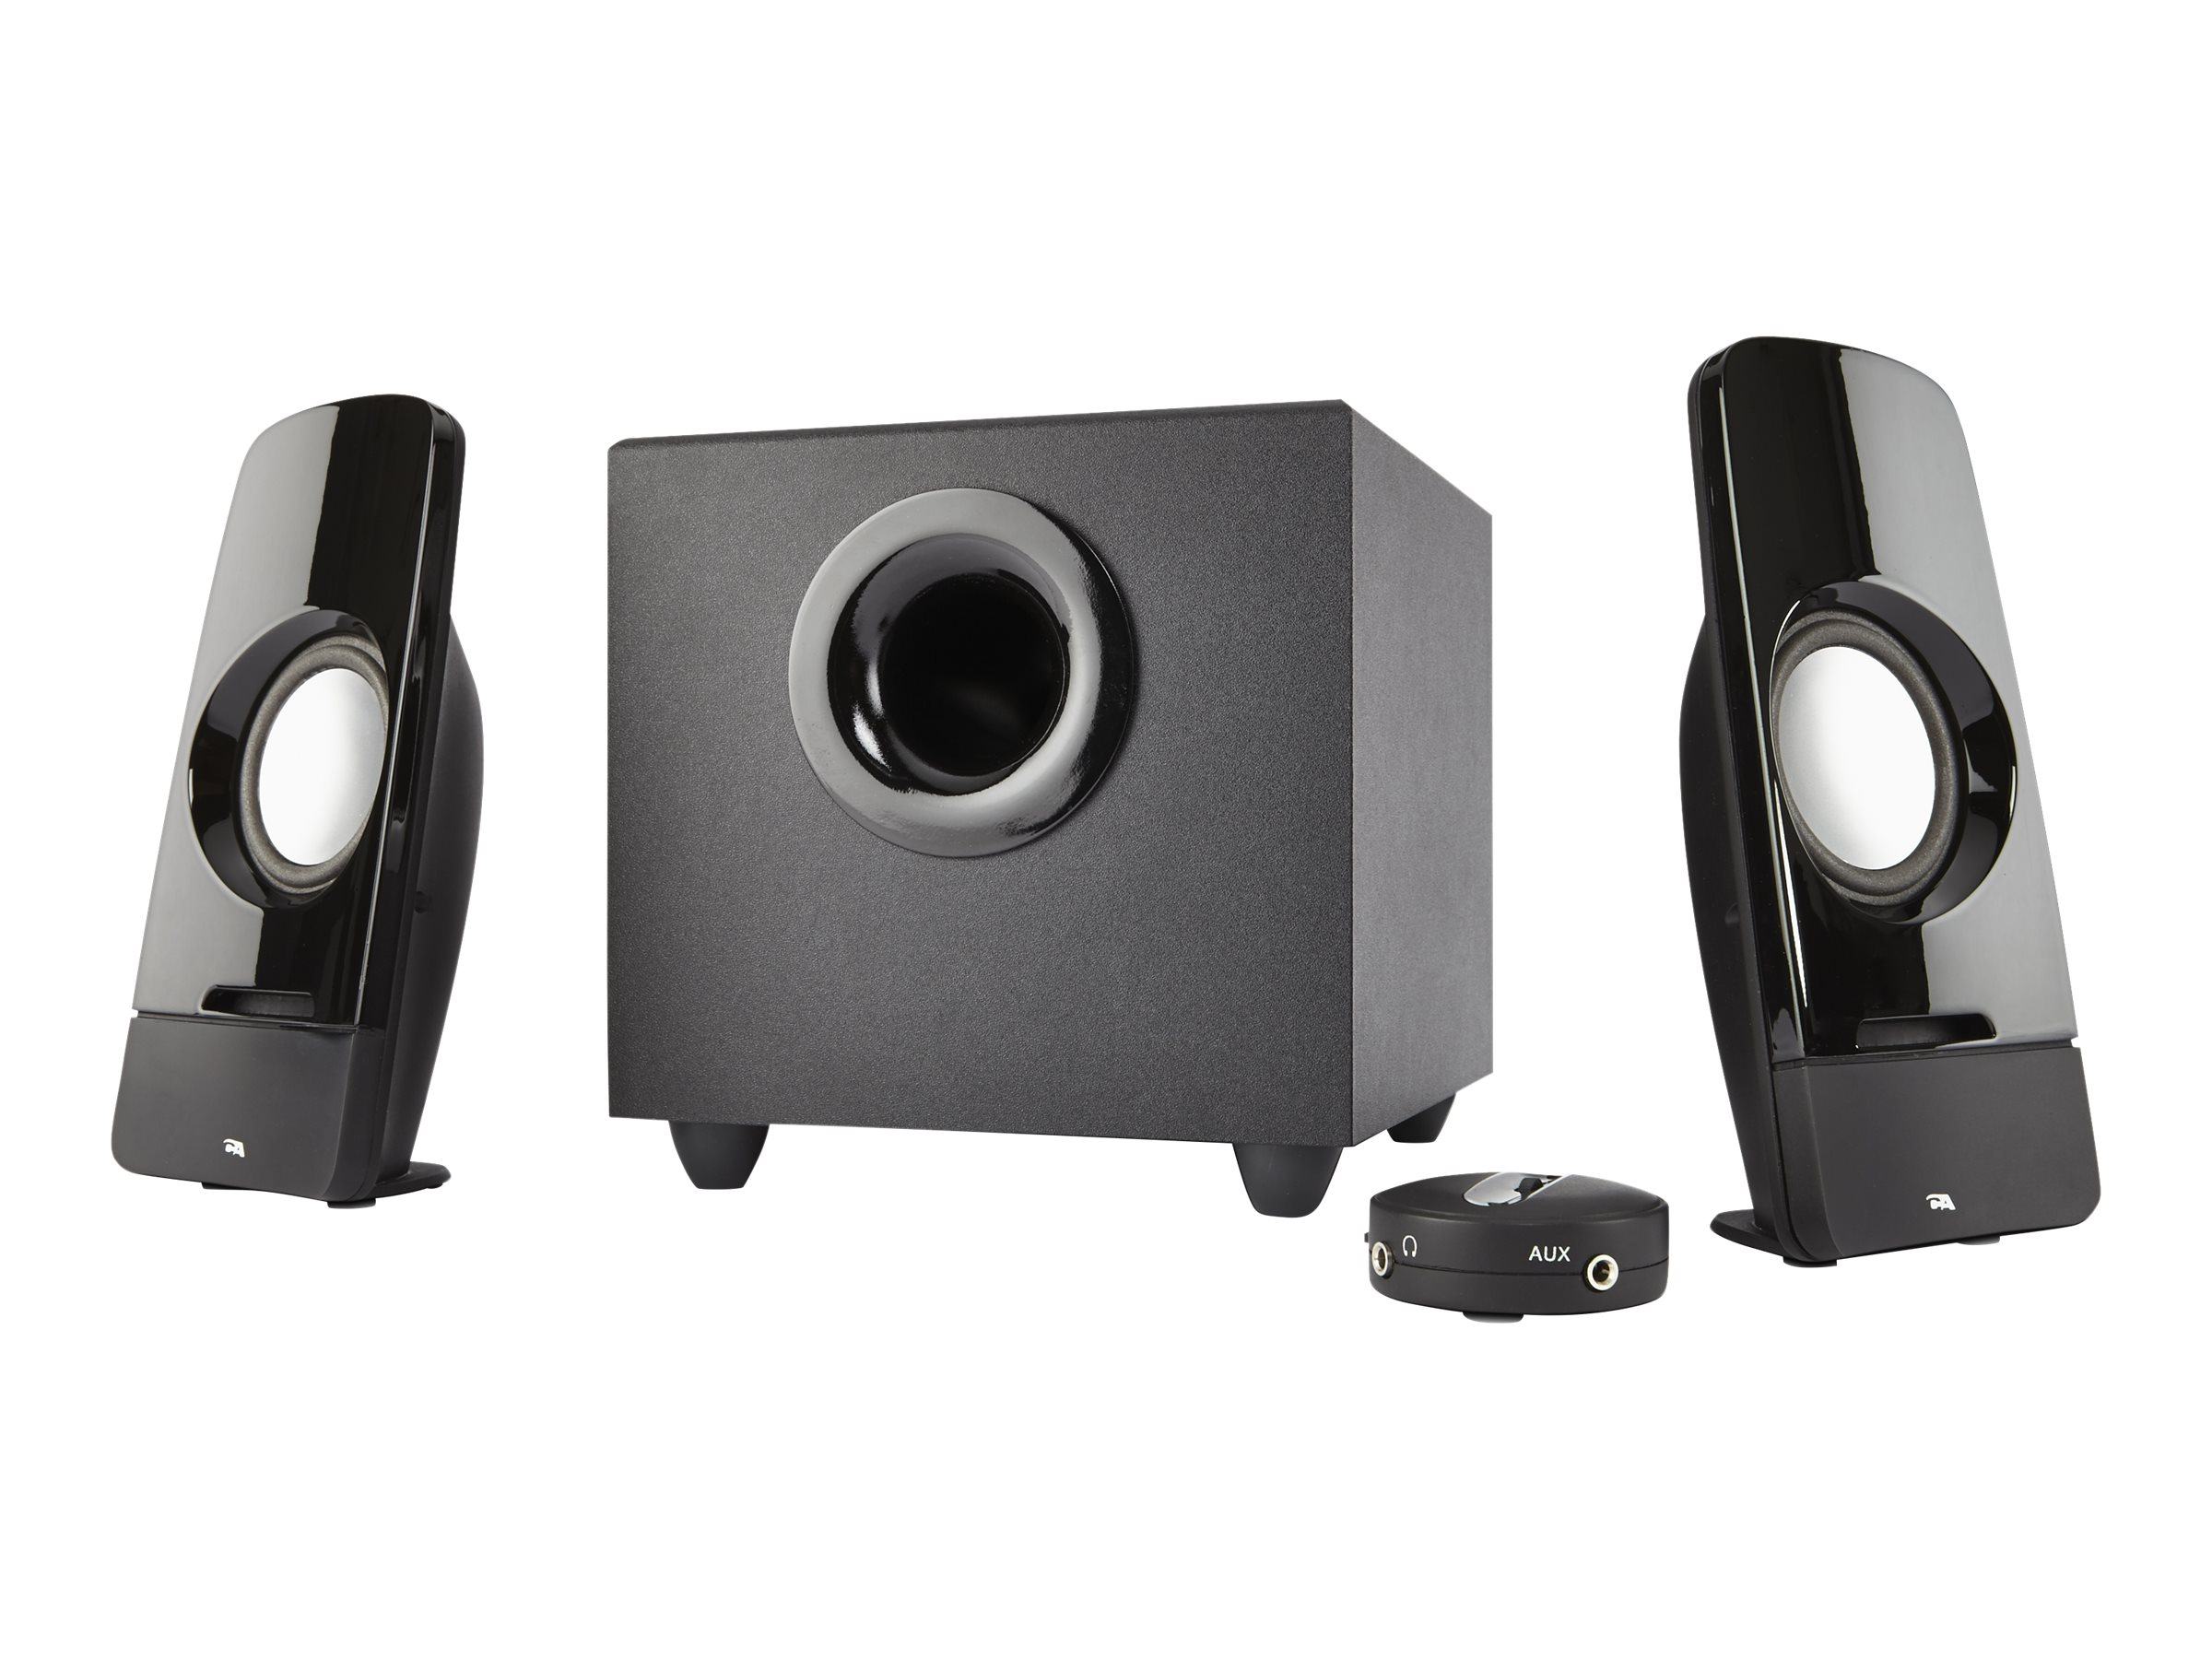 Cyber Acoustics Curve Series Control Pod Subwoofer 2.1 Powered Speaker System, CA-3350